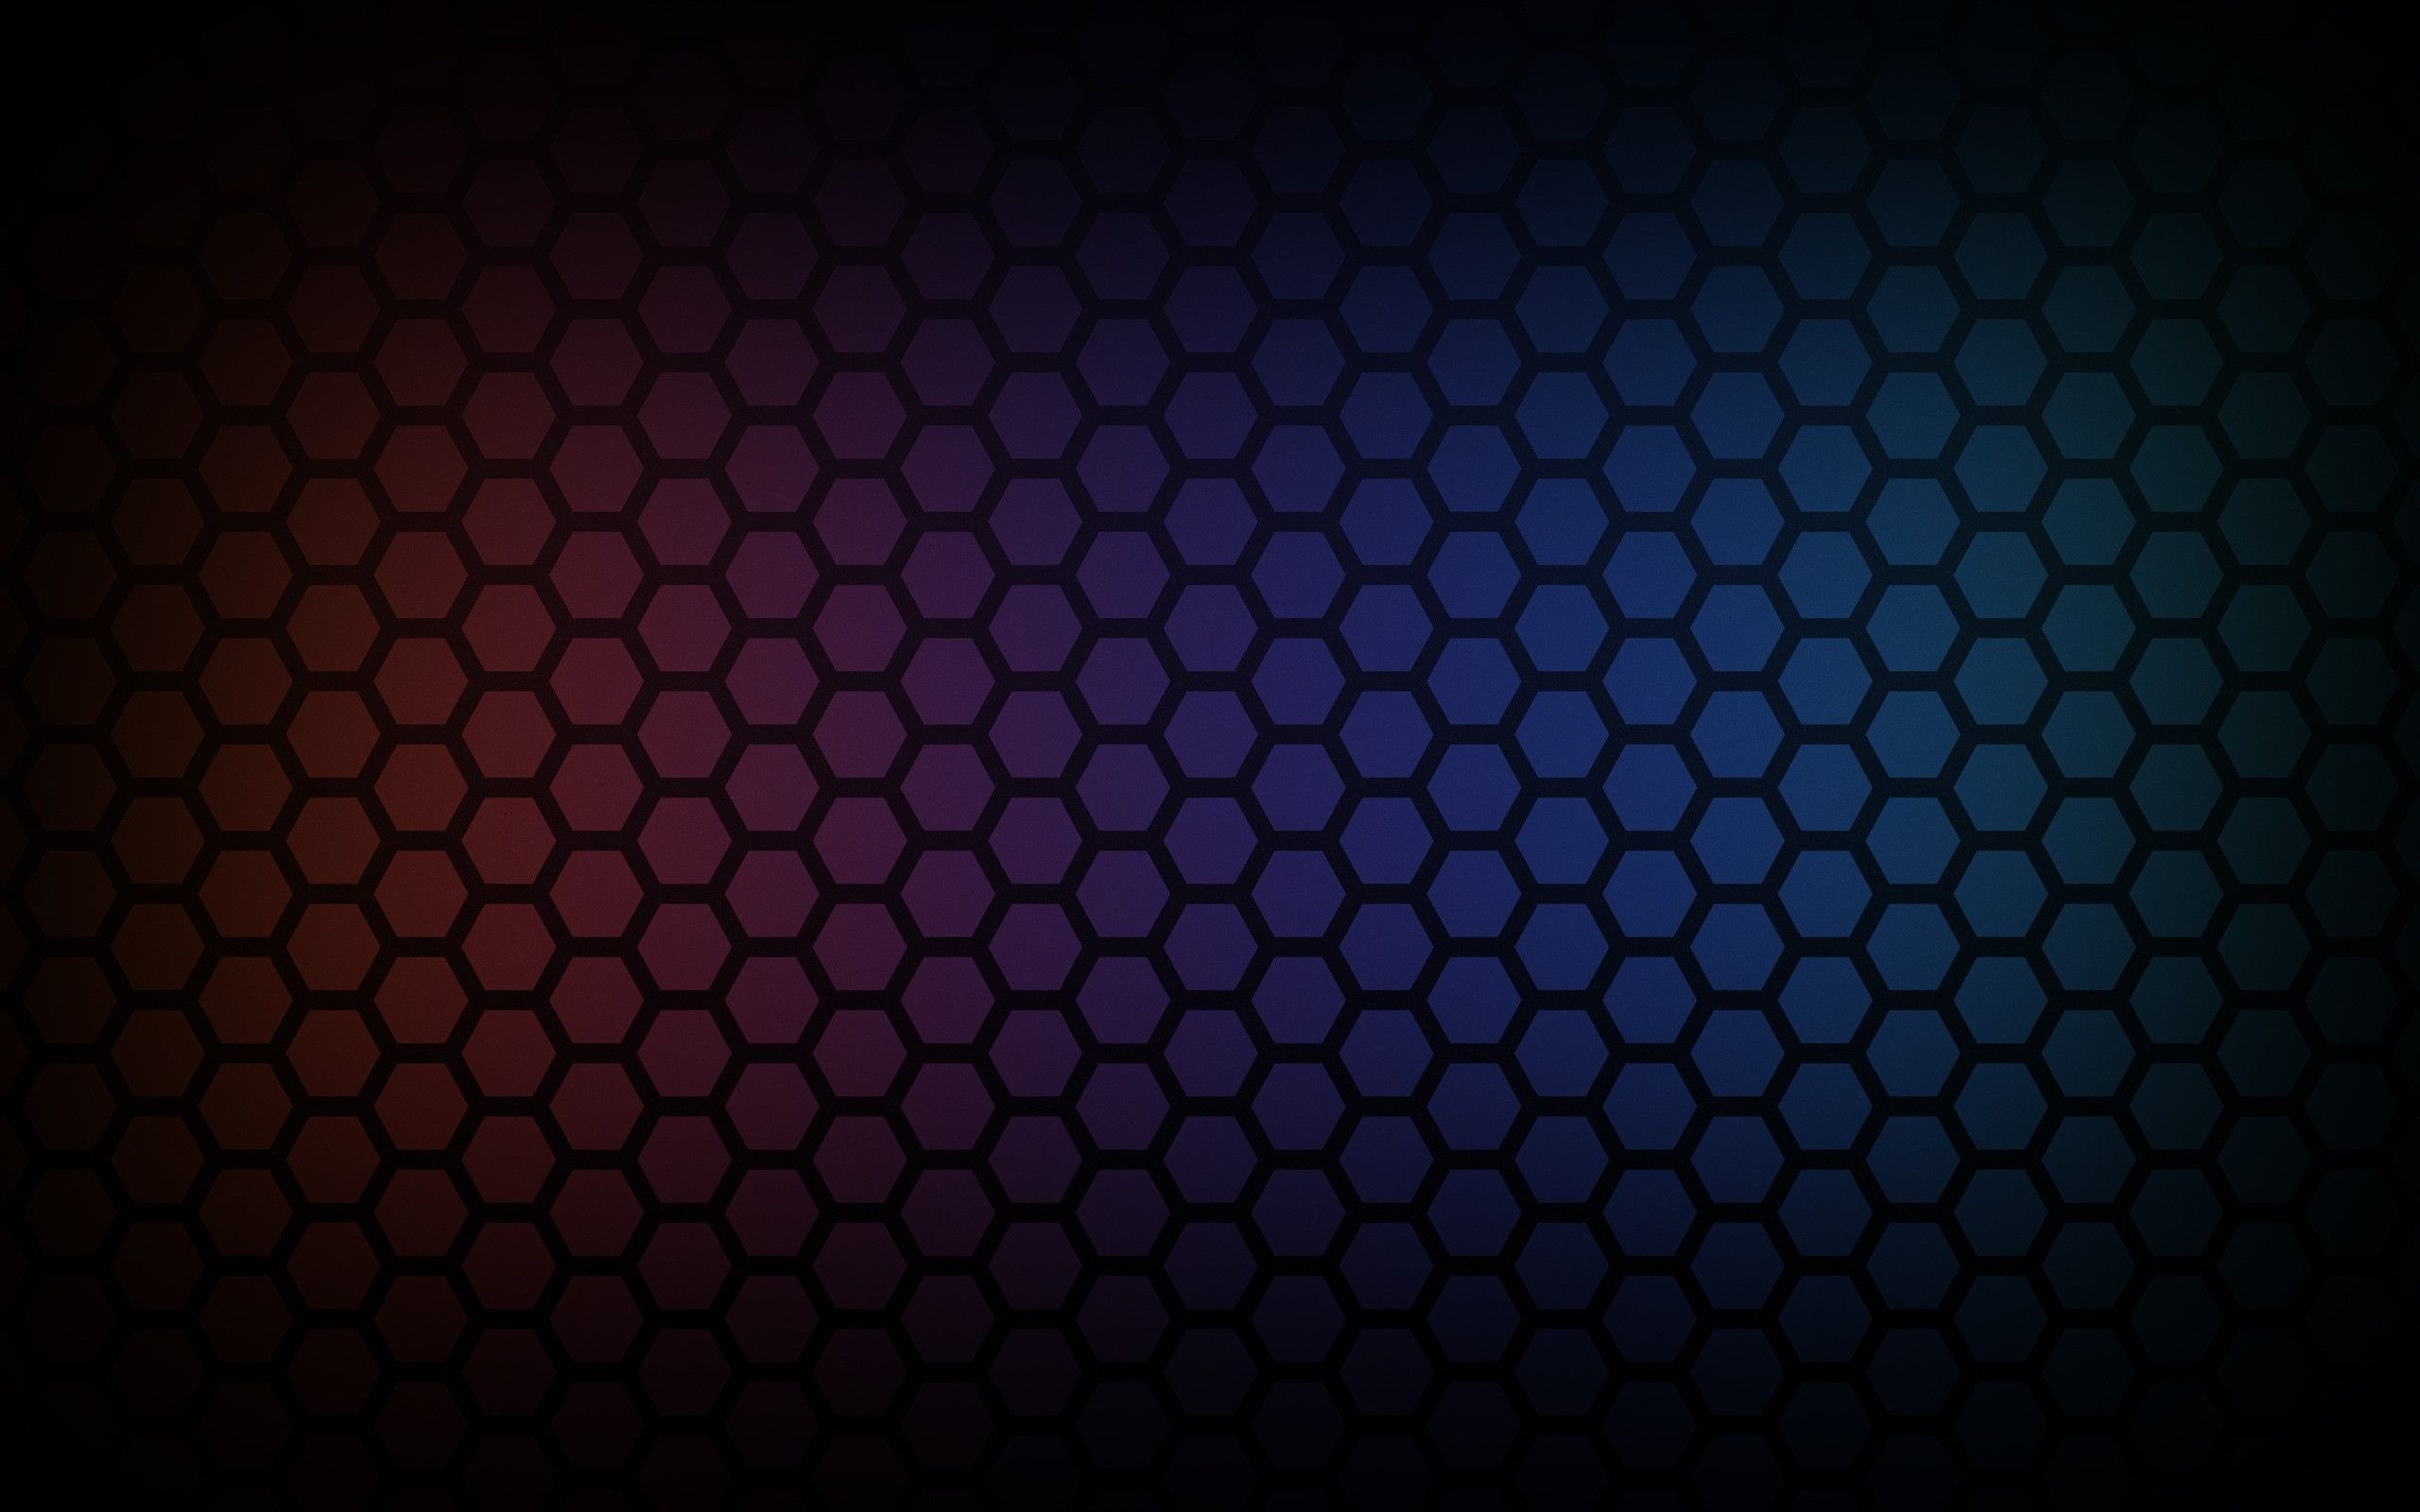 Honeycomb Wallpapers Top Free Honeycomb Backgrounds